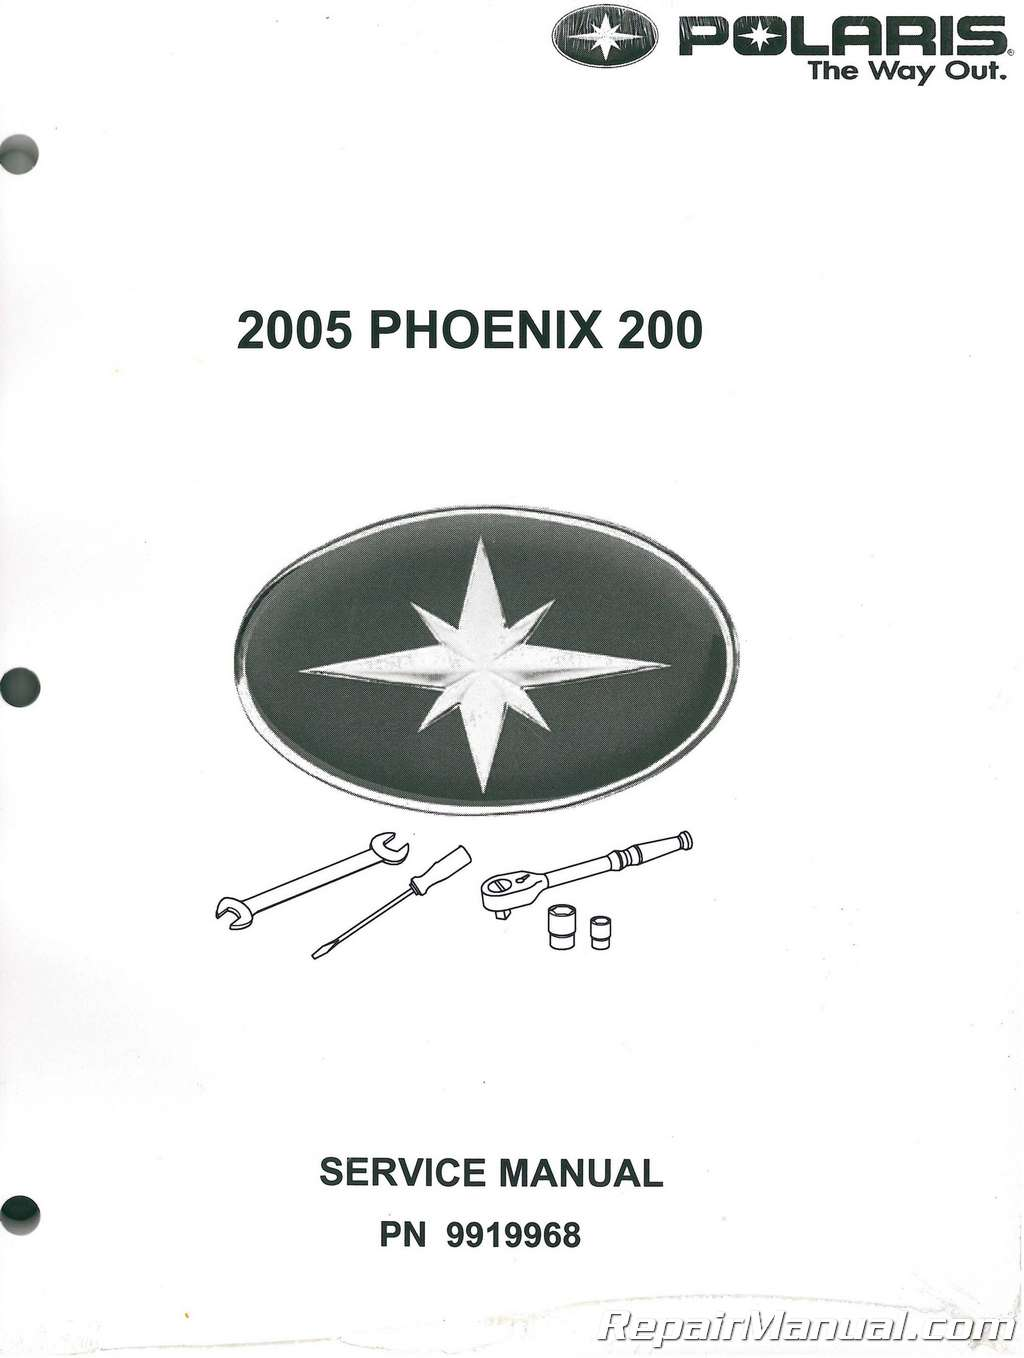 hight resolution of 2005 polaris phoenix 200 atv service manual 001 1